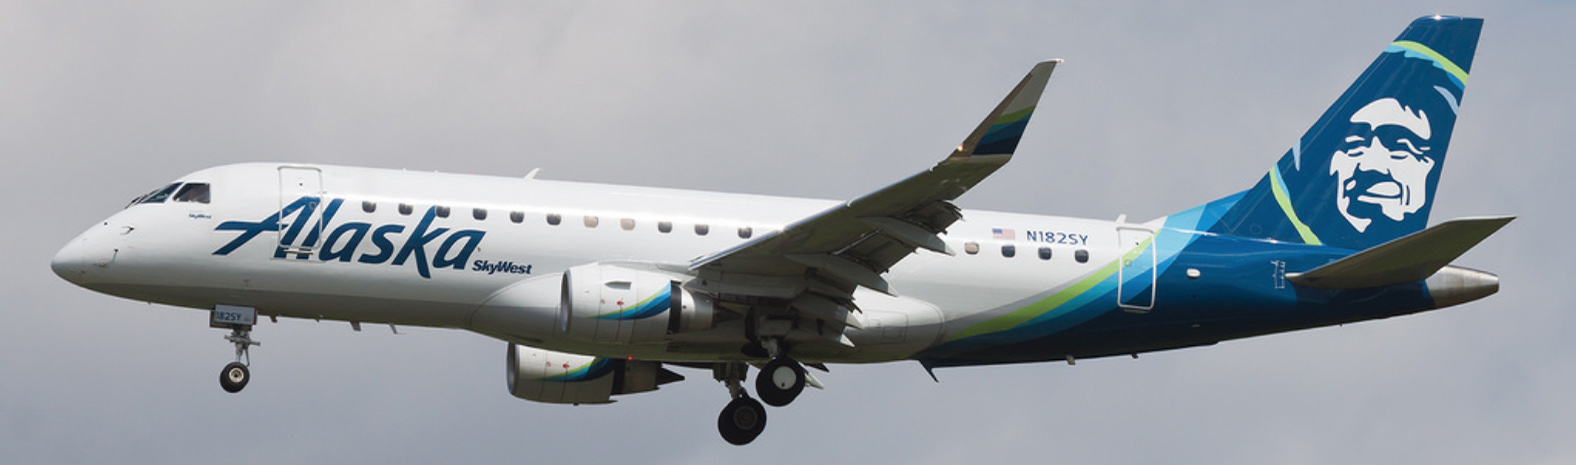 Skywest E175 in Alaska Airlines livery